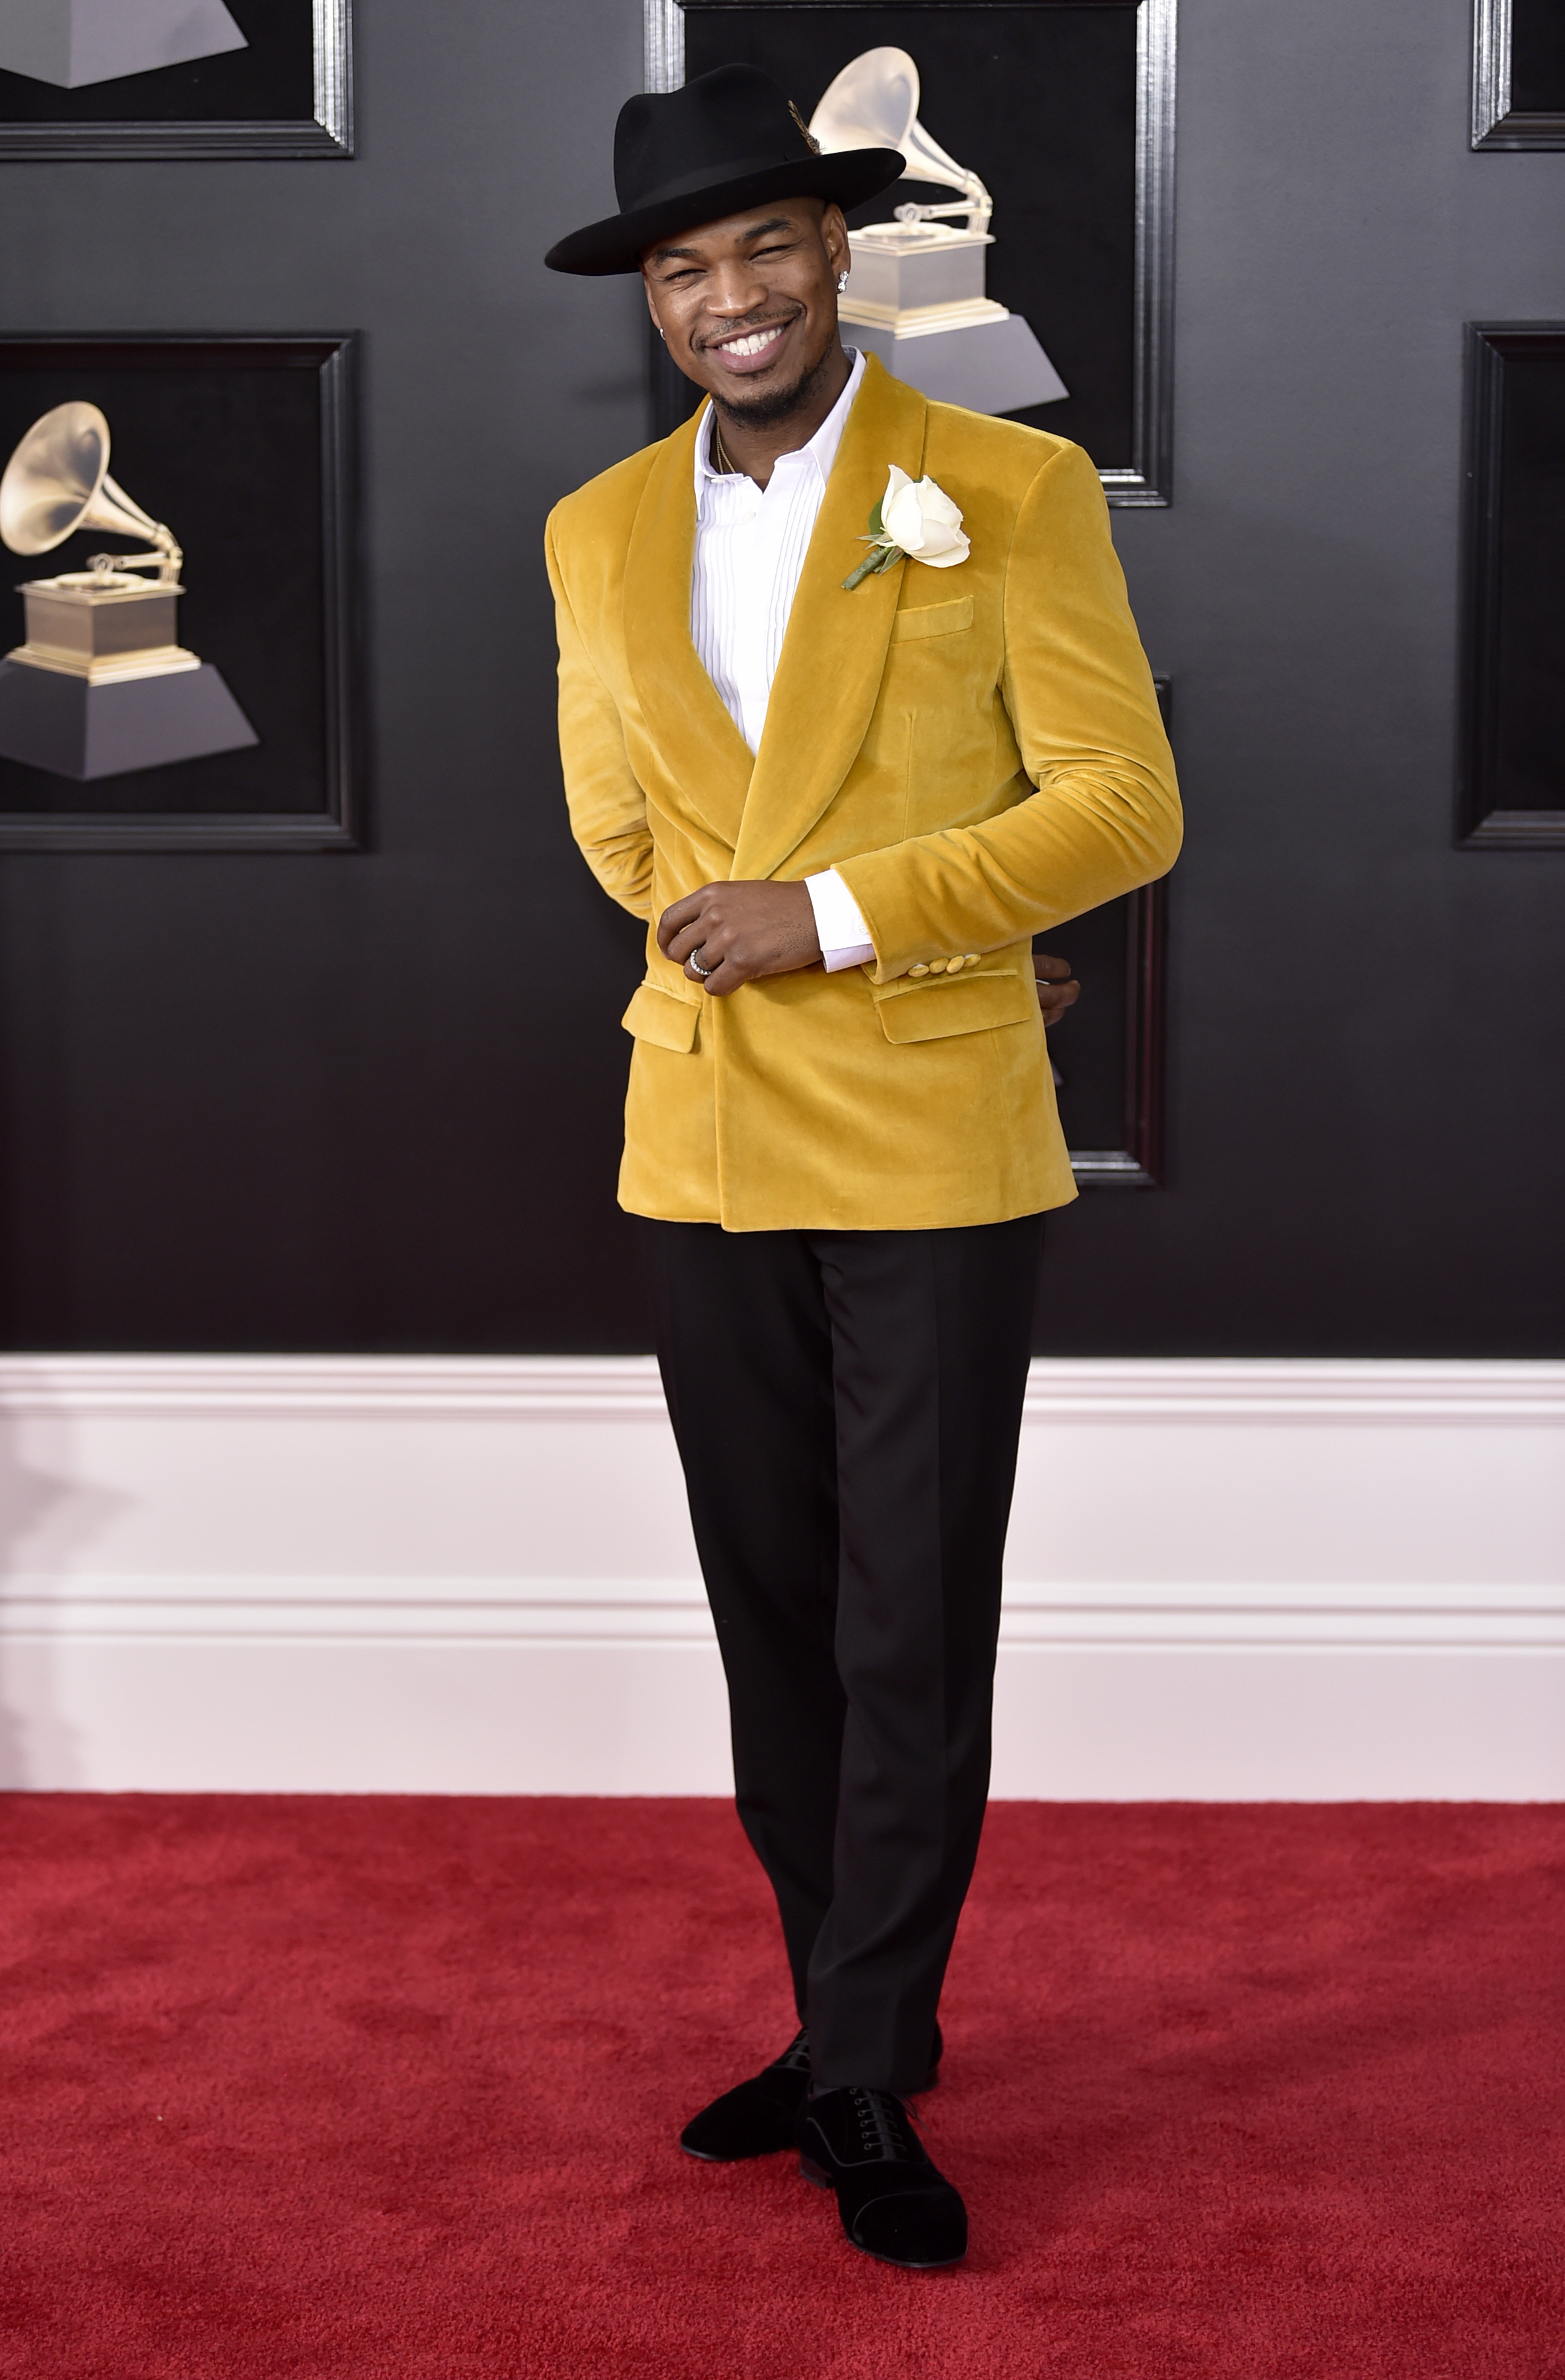 <div class='meta'><div class='origin-logo' data-origin='AP'></div><span class='caption-text' data-credit='Evan Agostini/Invision/AP'>Ne-Yo arrives at the 60th annual Grammy Awards at Madison Square Garden on Sunday, Jan. 28, 2018, in New York.</span></div>